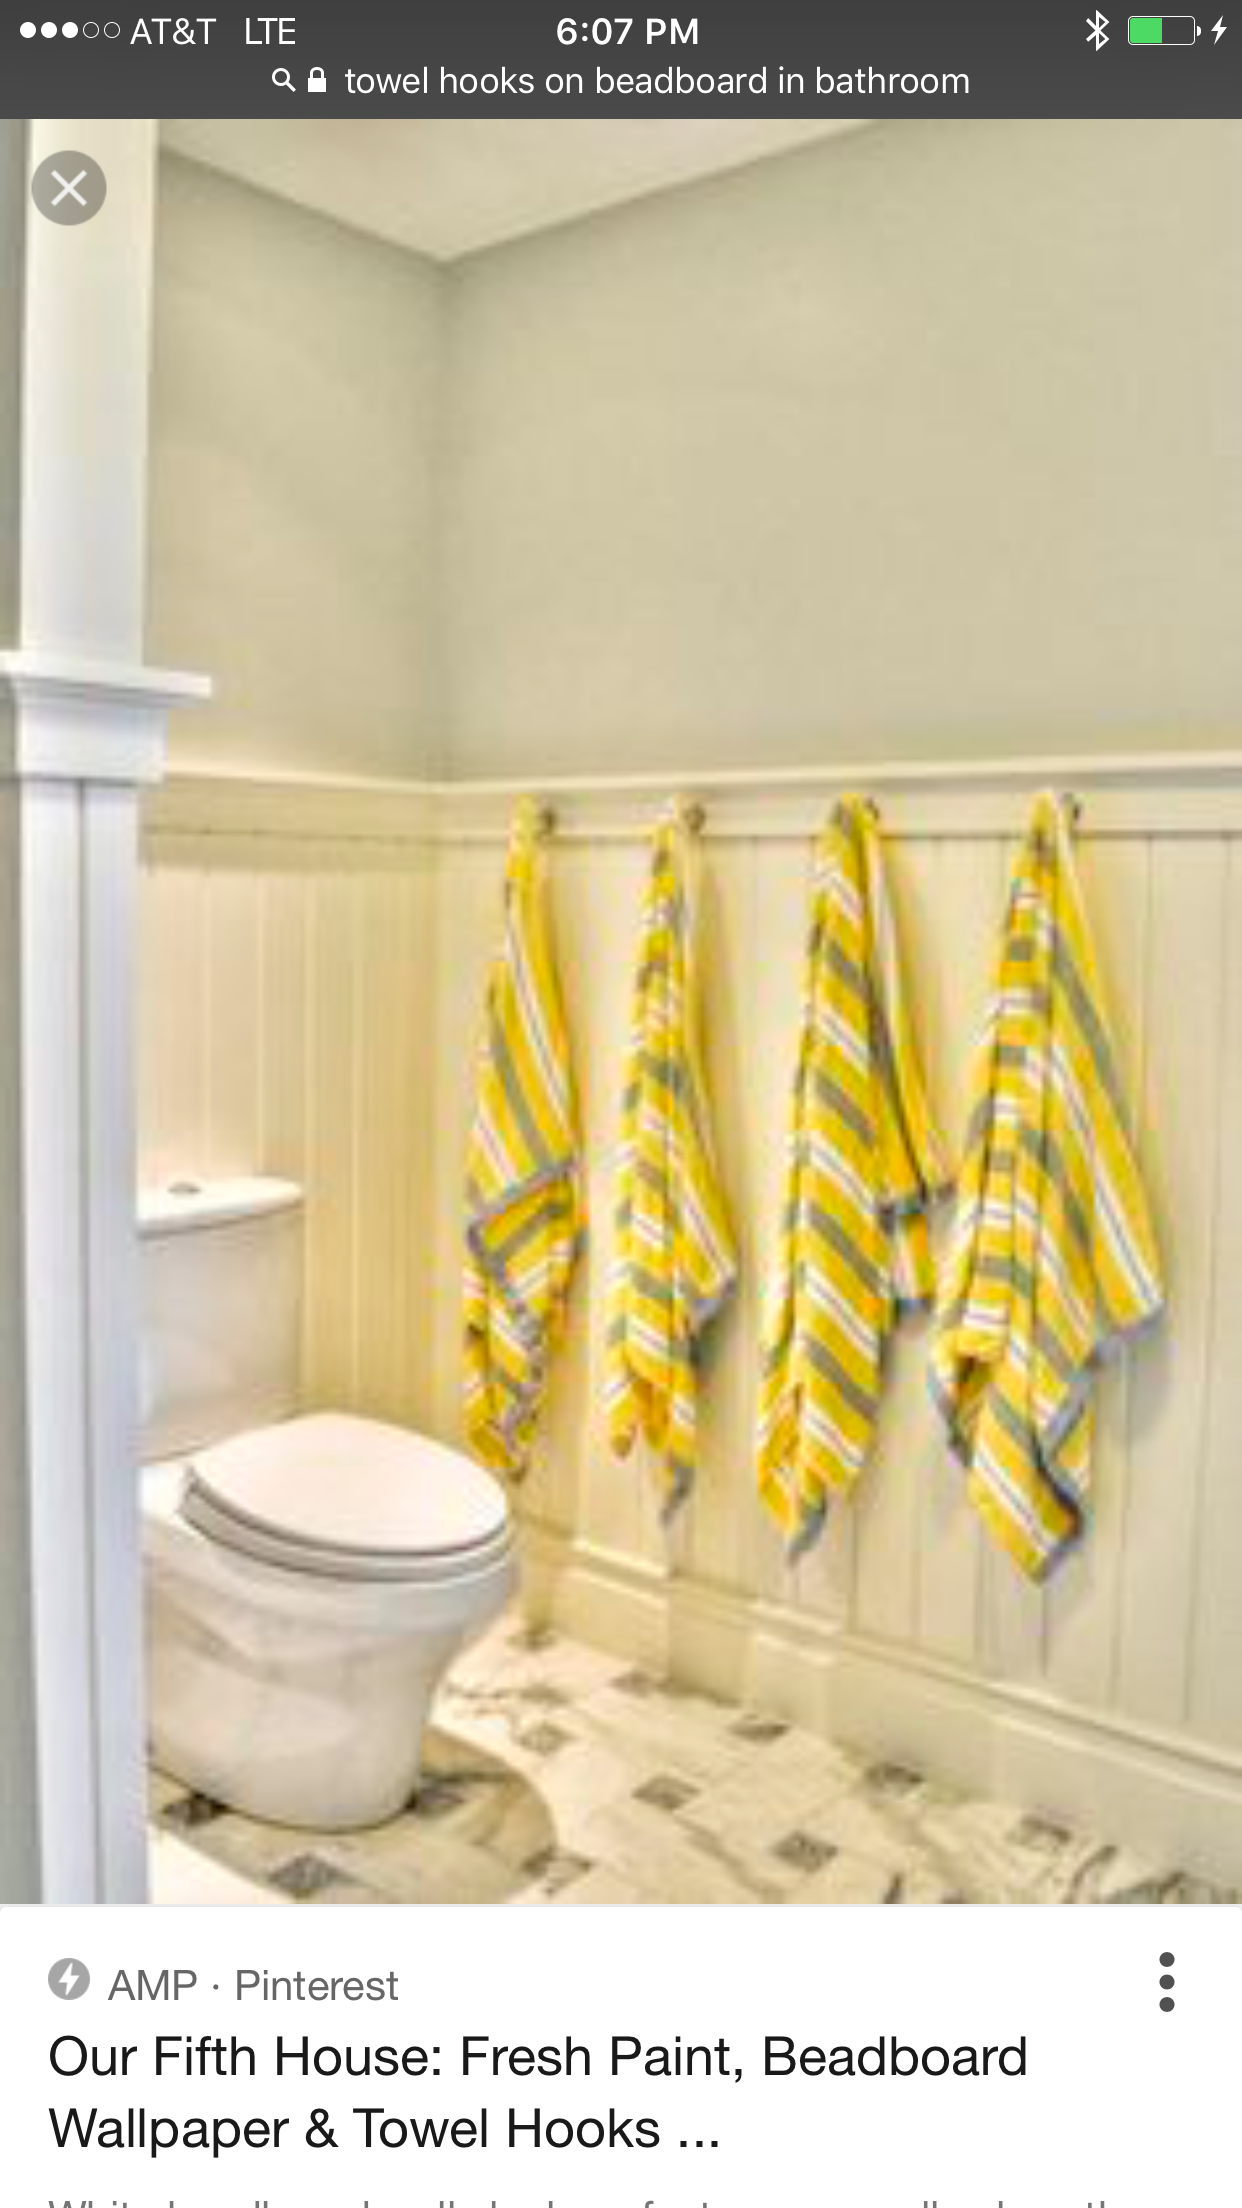 Pin by Crissi Cook on Bathroom | Pinterest